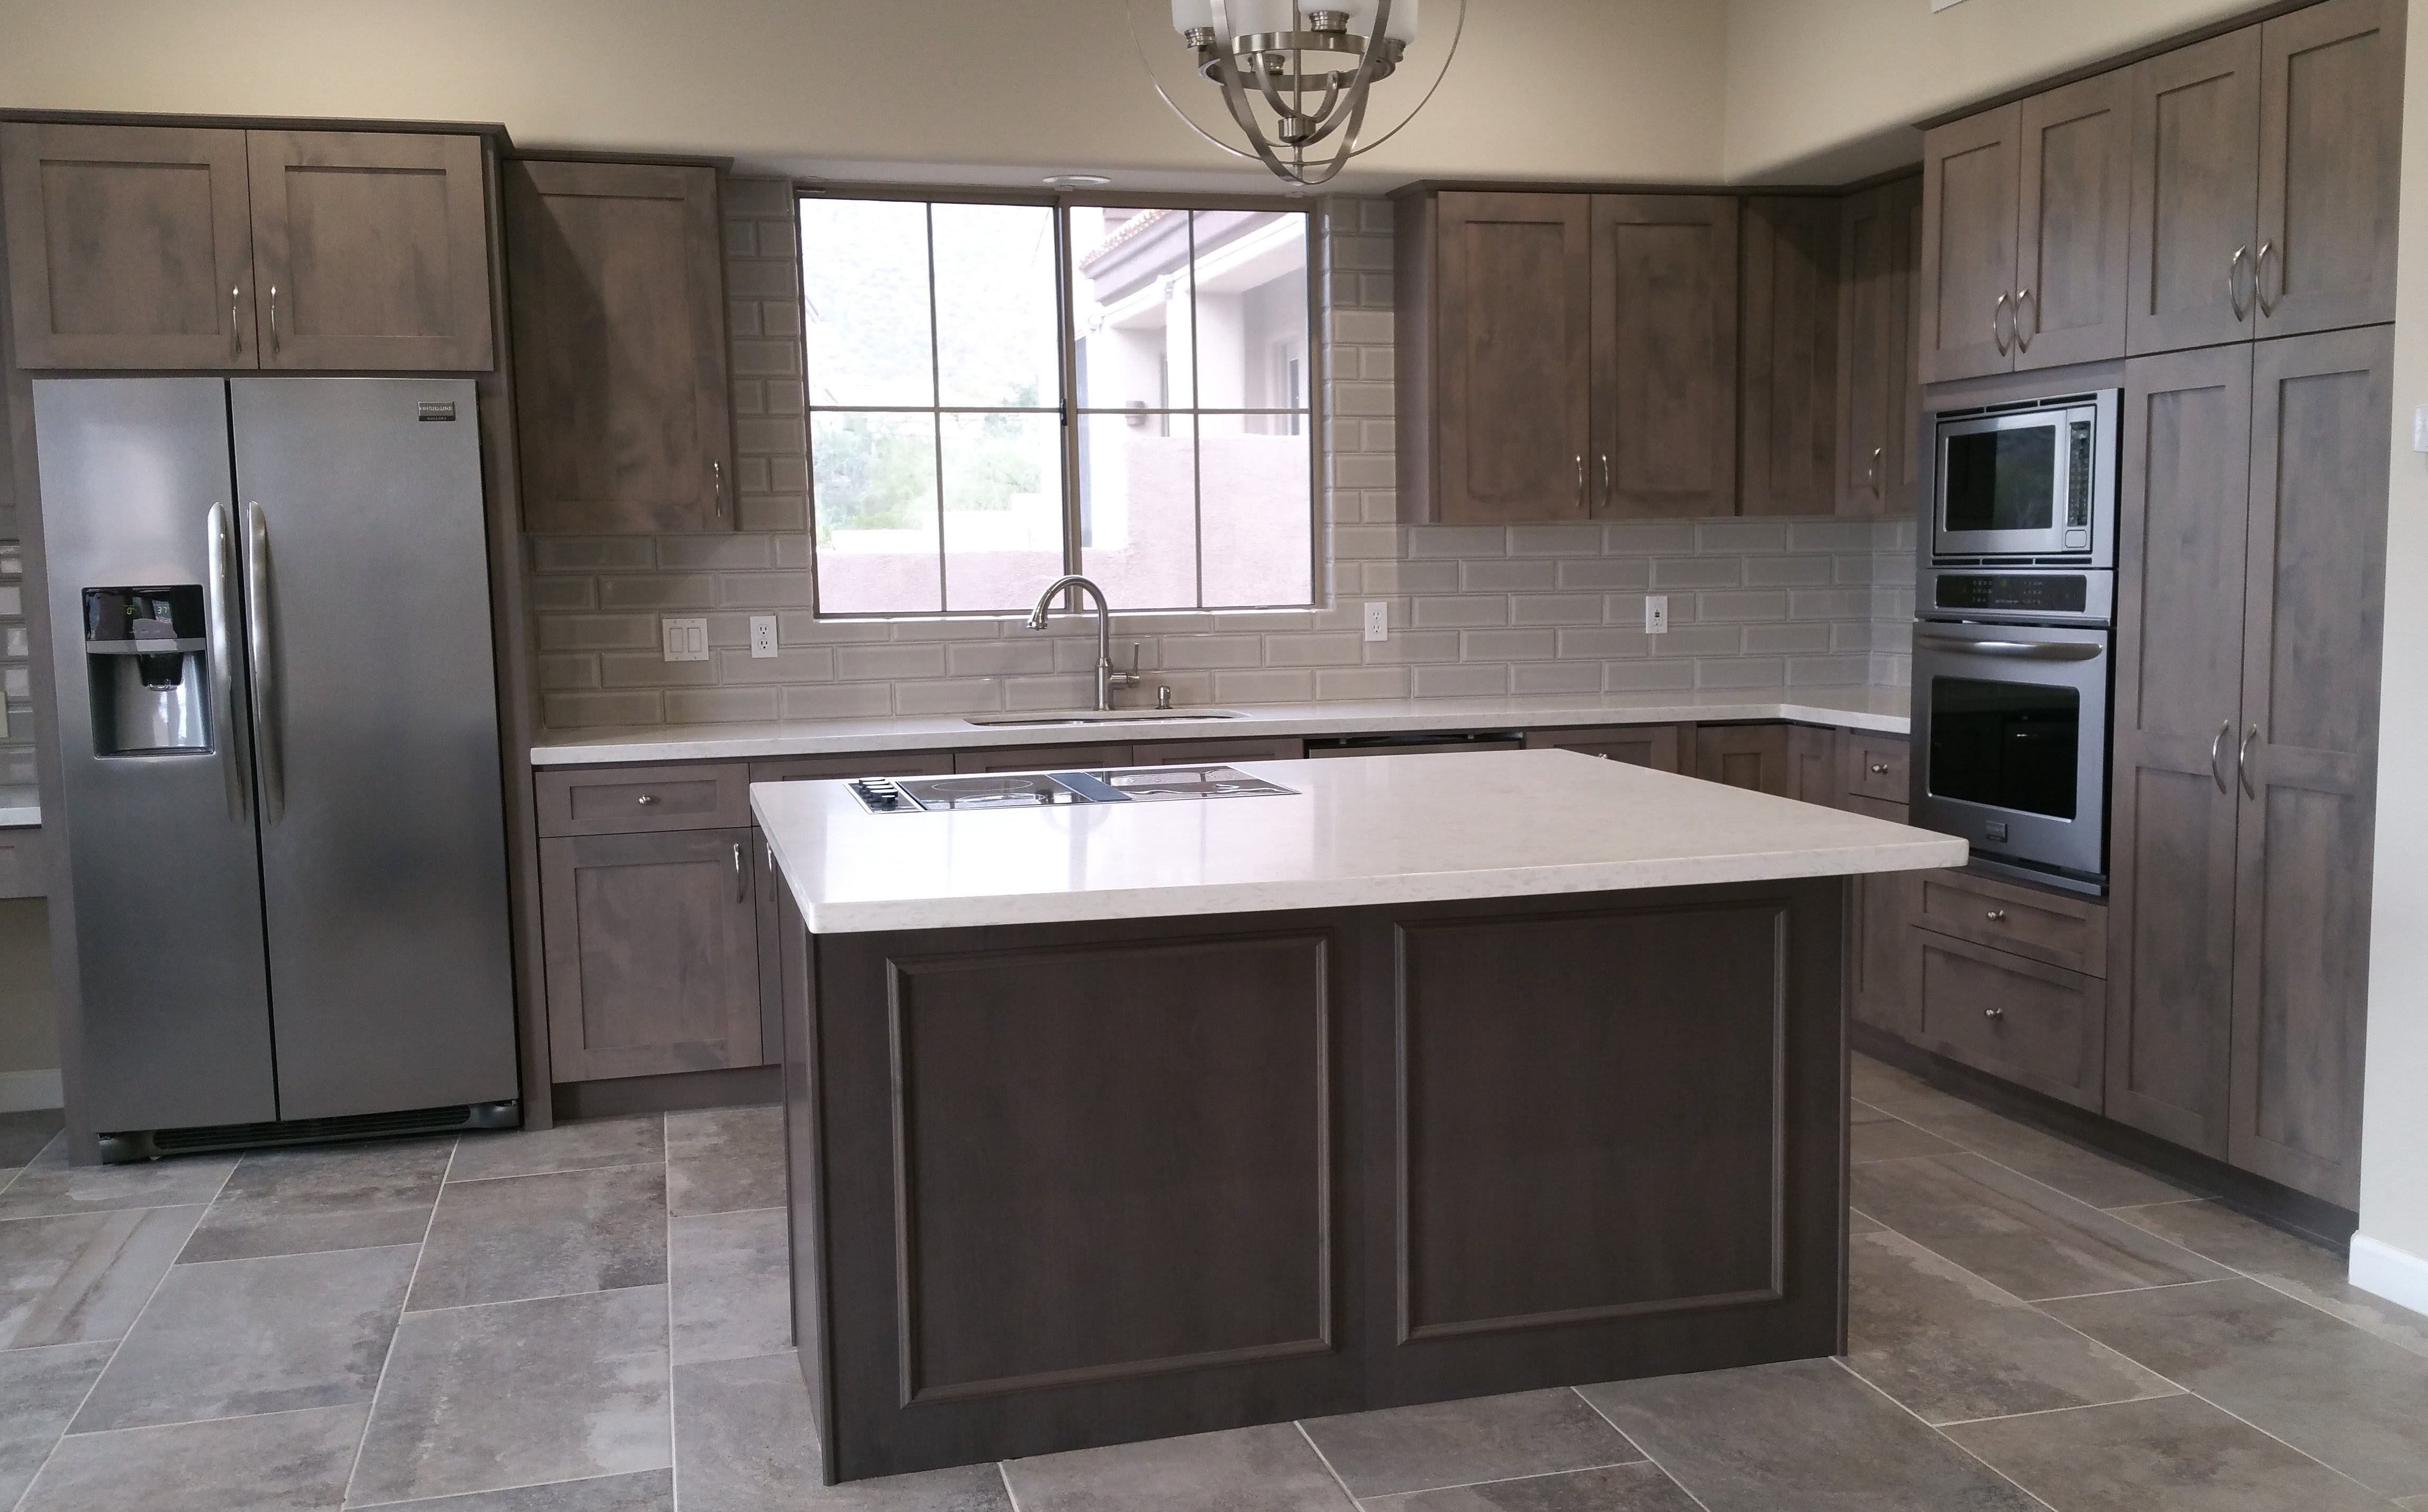 Better Than New Kitchens   Kitchen Cabinet Refacing ...